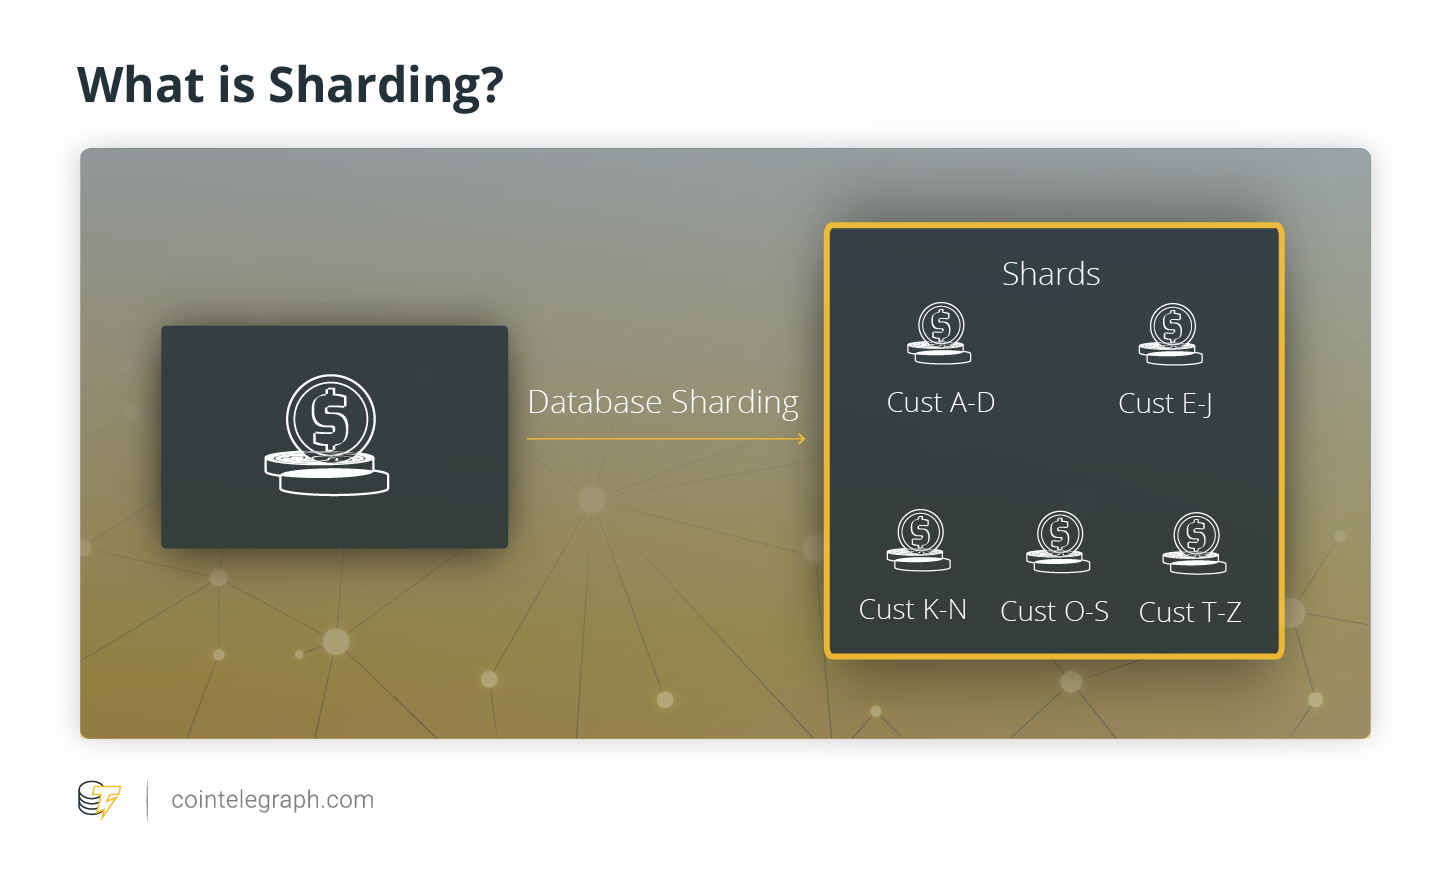 What is sharding?